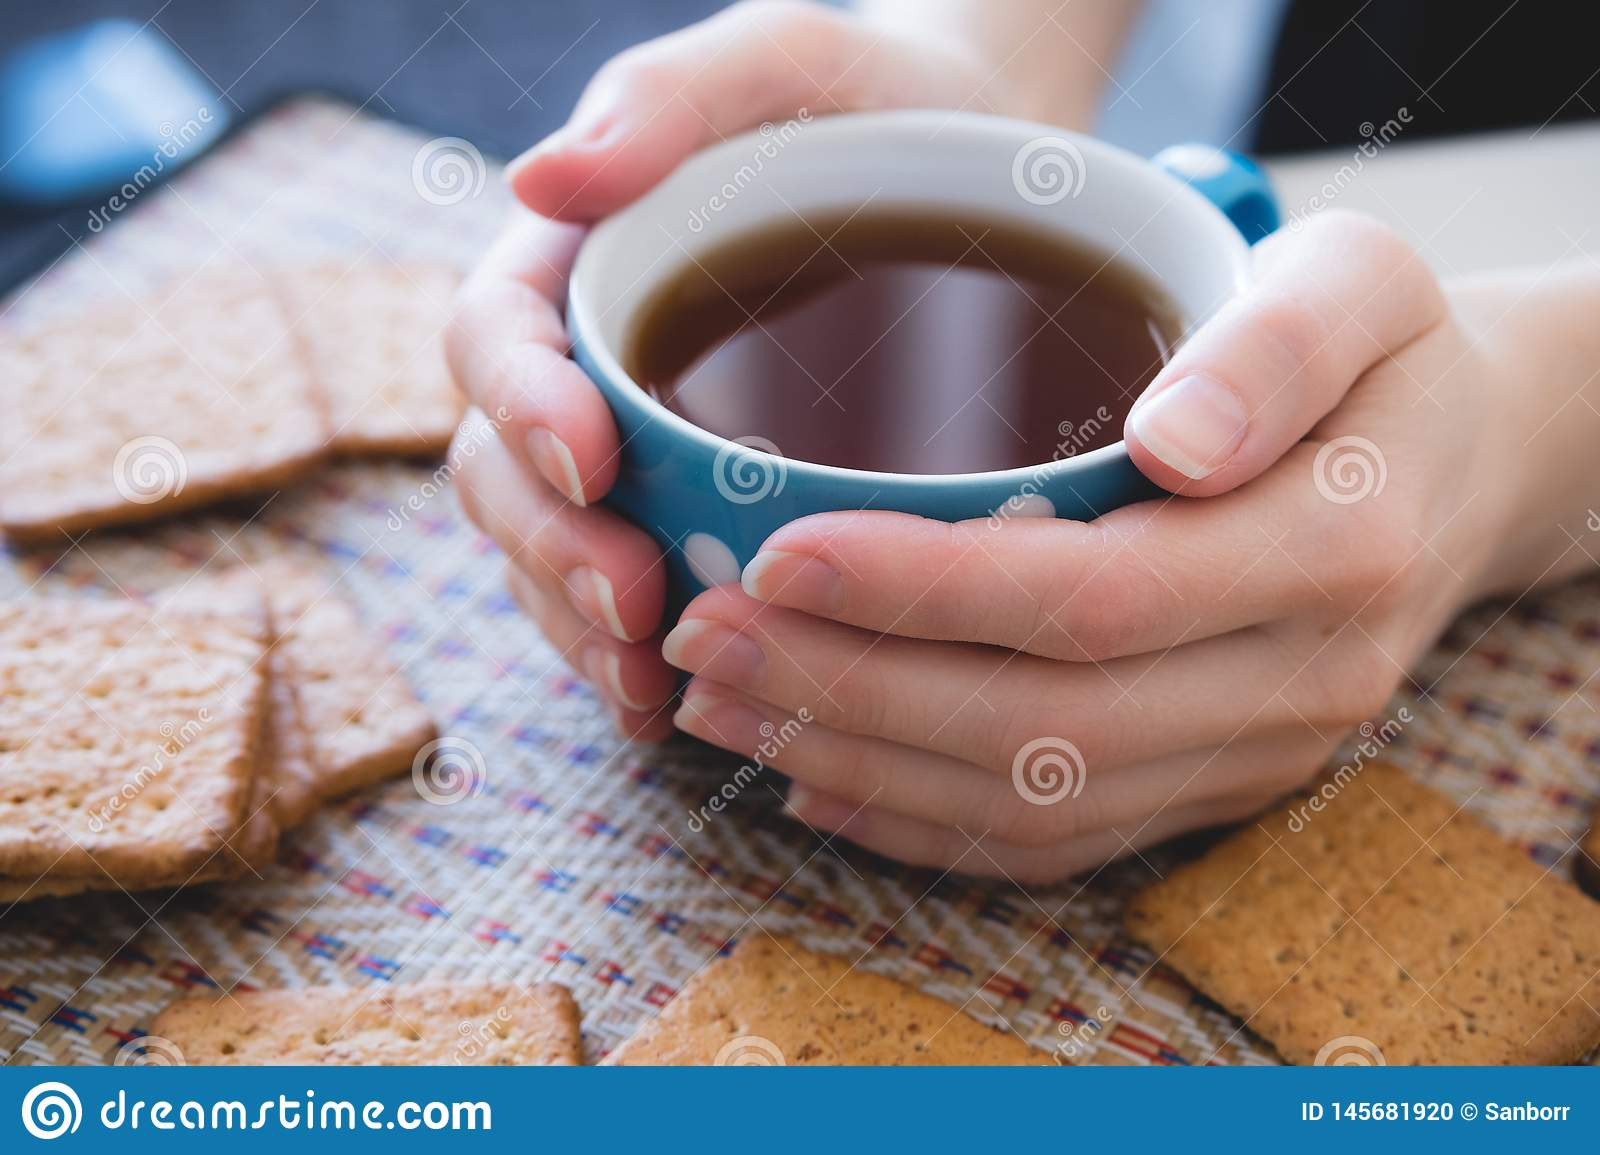 Woman holding a Cup of hot tea or coffee, lie next to cookies, close-up